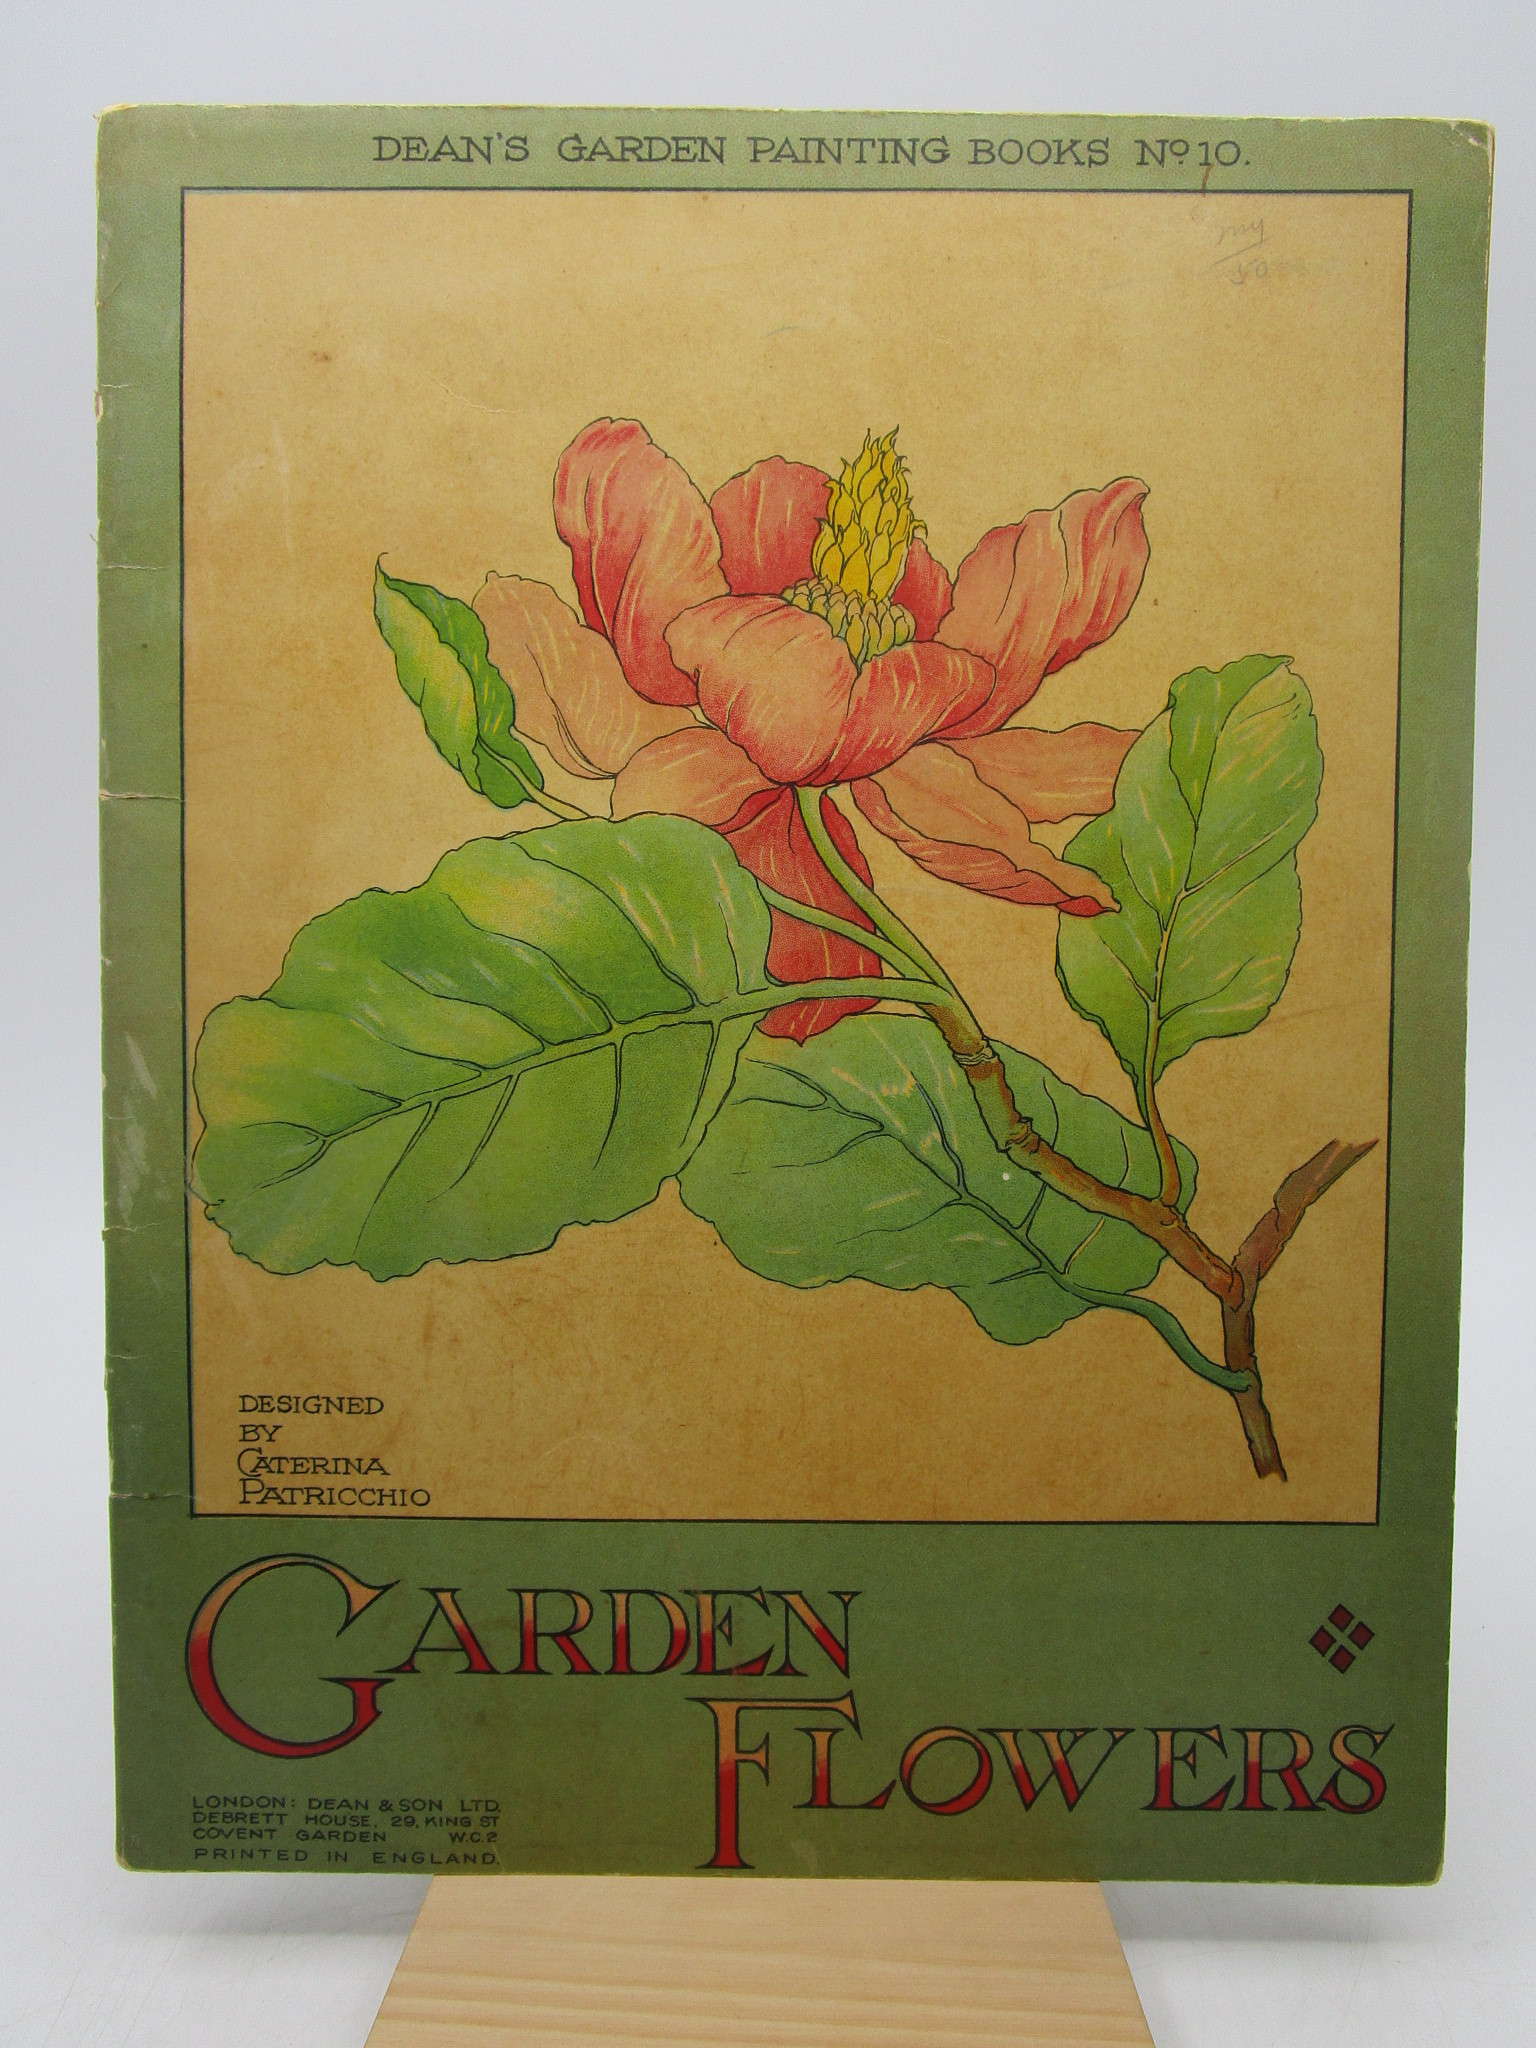 Image for Garden Flowers: Dean's Garden Painting Books No. 10 (First Edition)